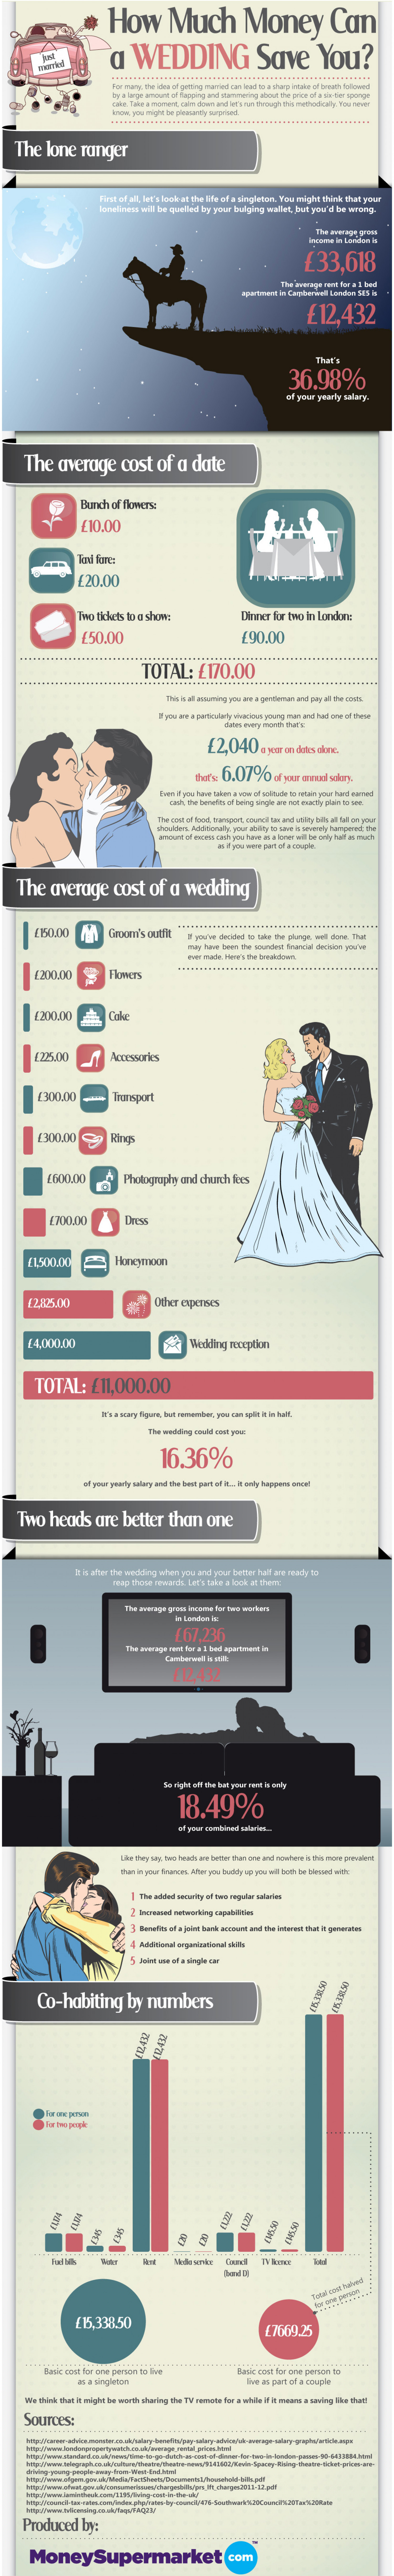 How Much Money Can a Wedding Save You? Infographic